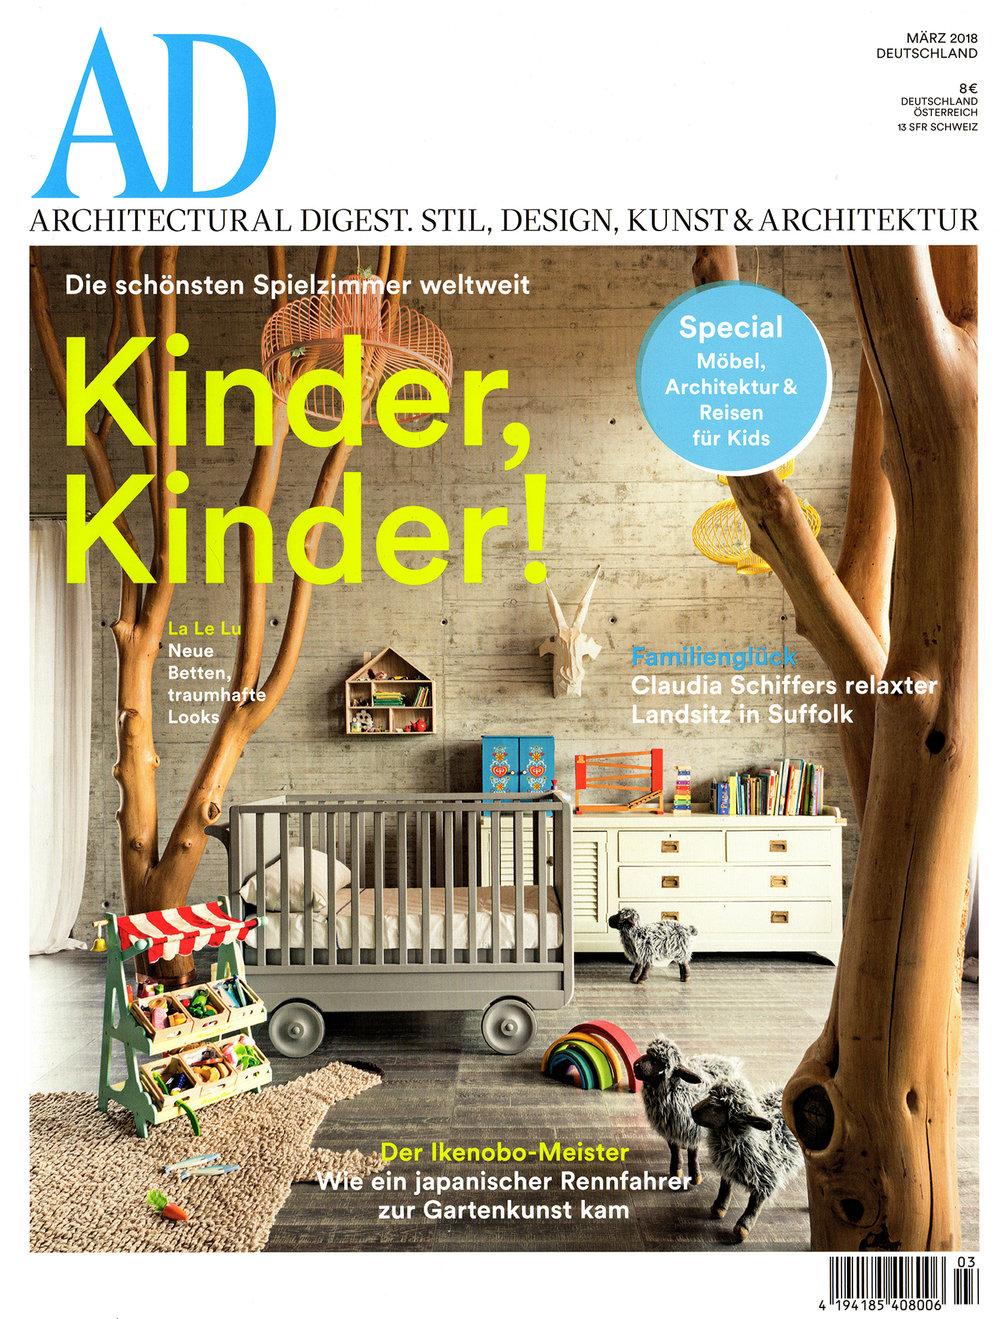 Architectural Digest Germany, 03-2018